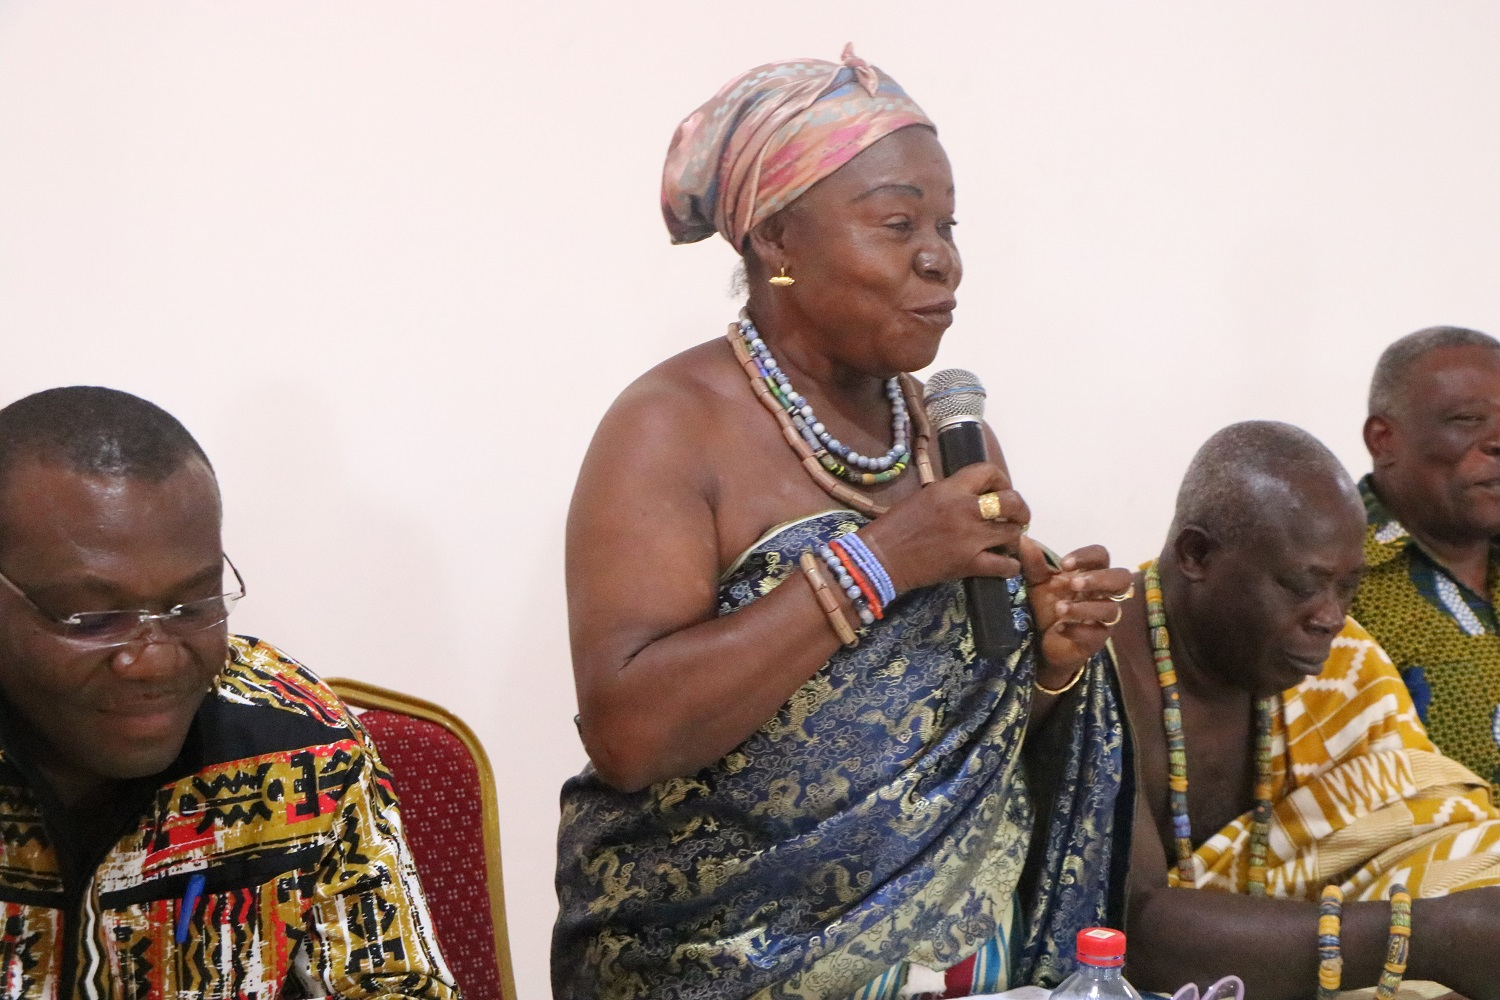 Mama Agblatsu III, Afetornyonufia of Ho Bankoe, Chaired the event